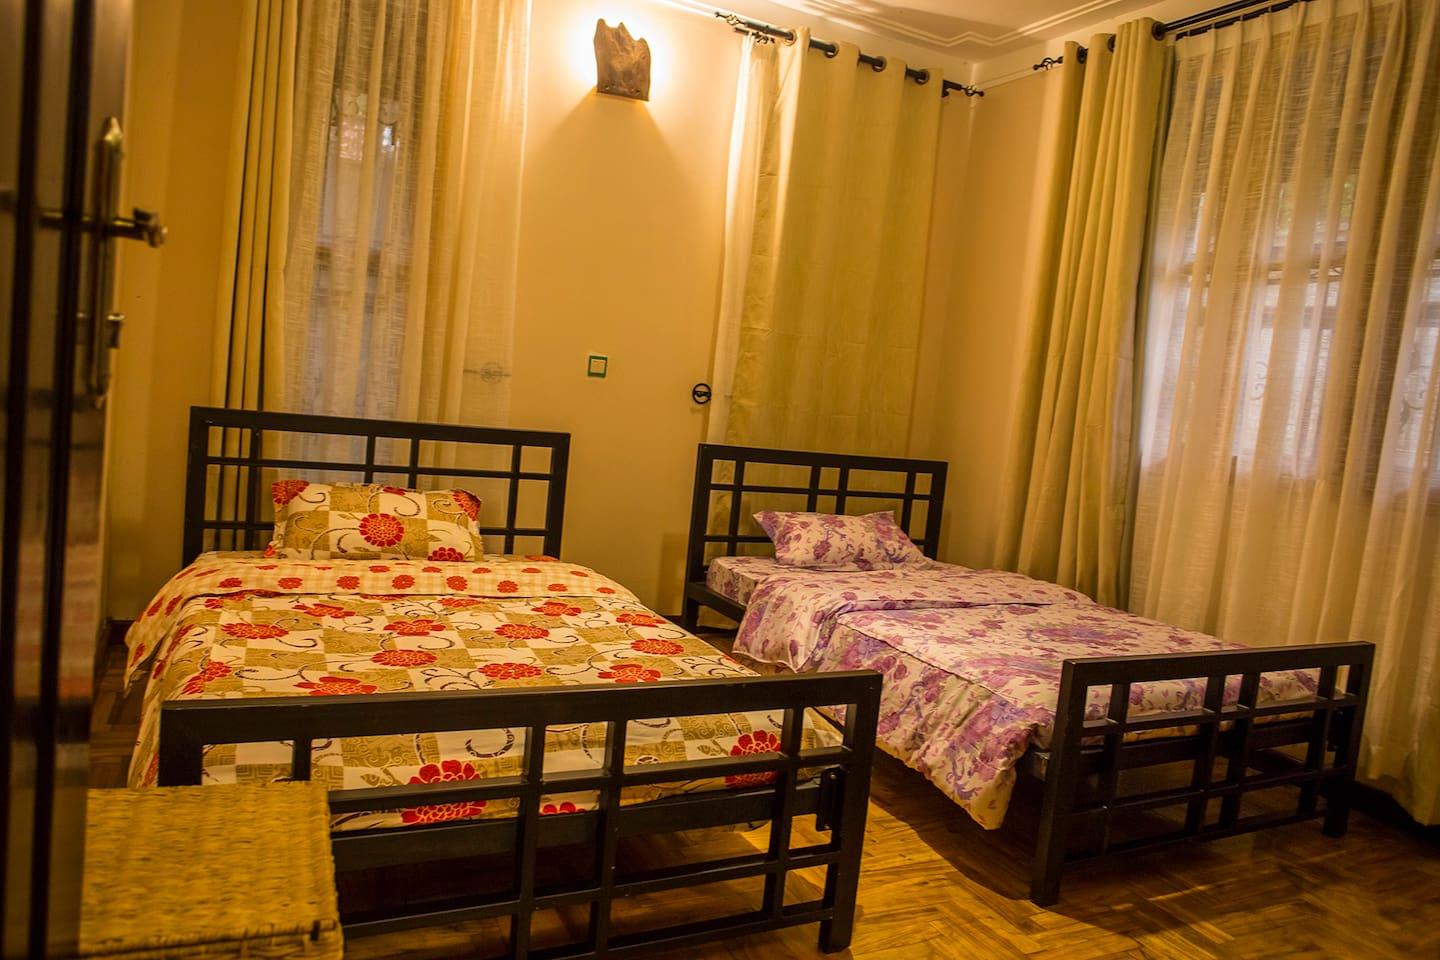 Self contained Twin Room 1. Accommodates two guests each on their own bed